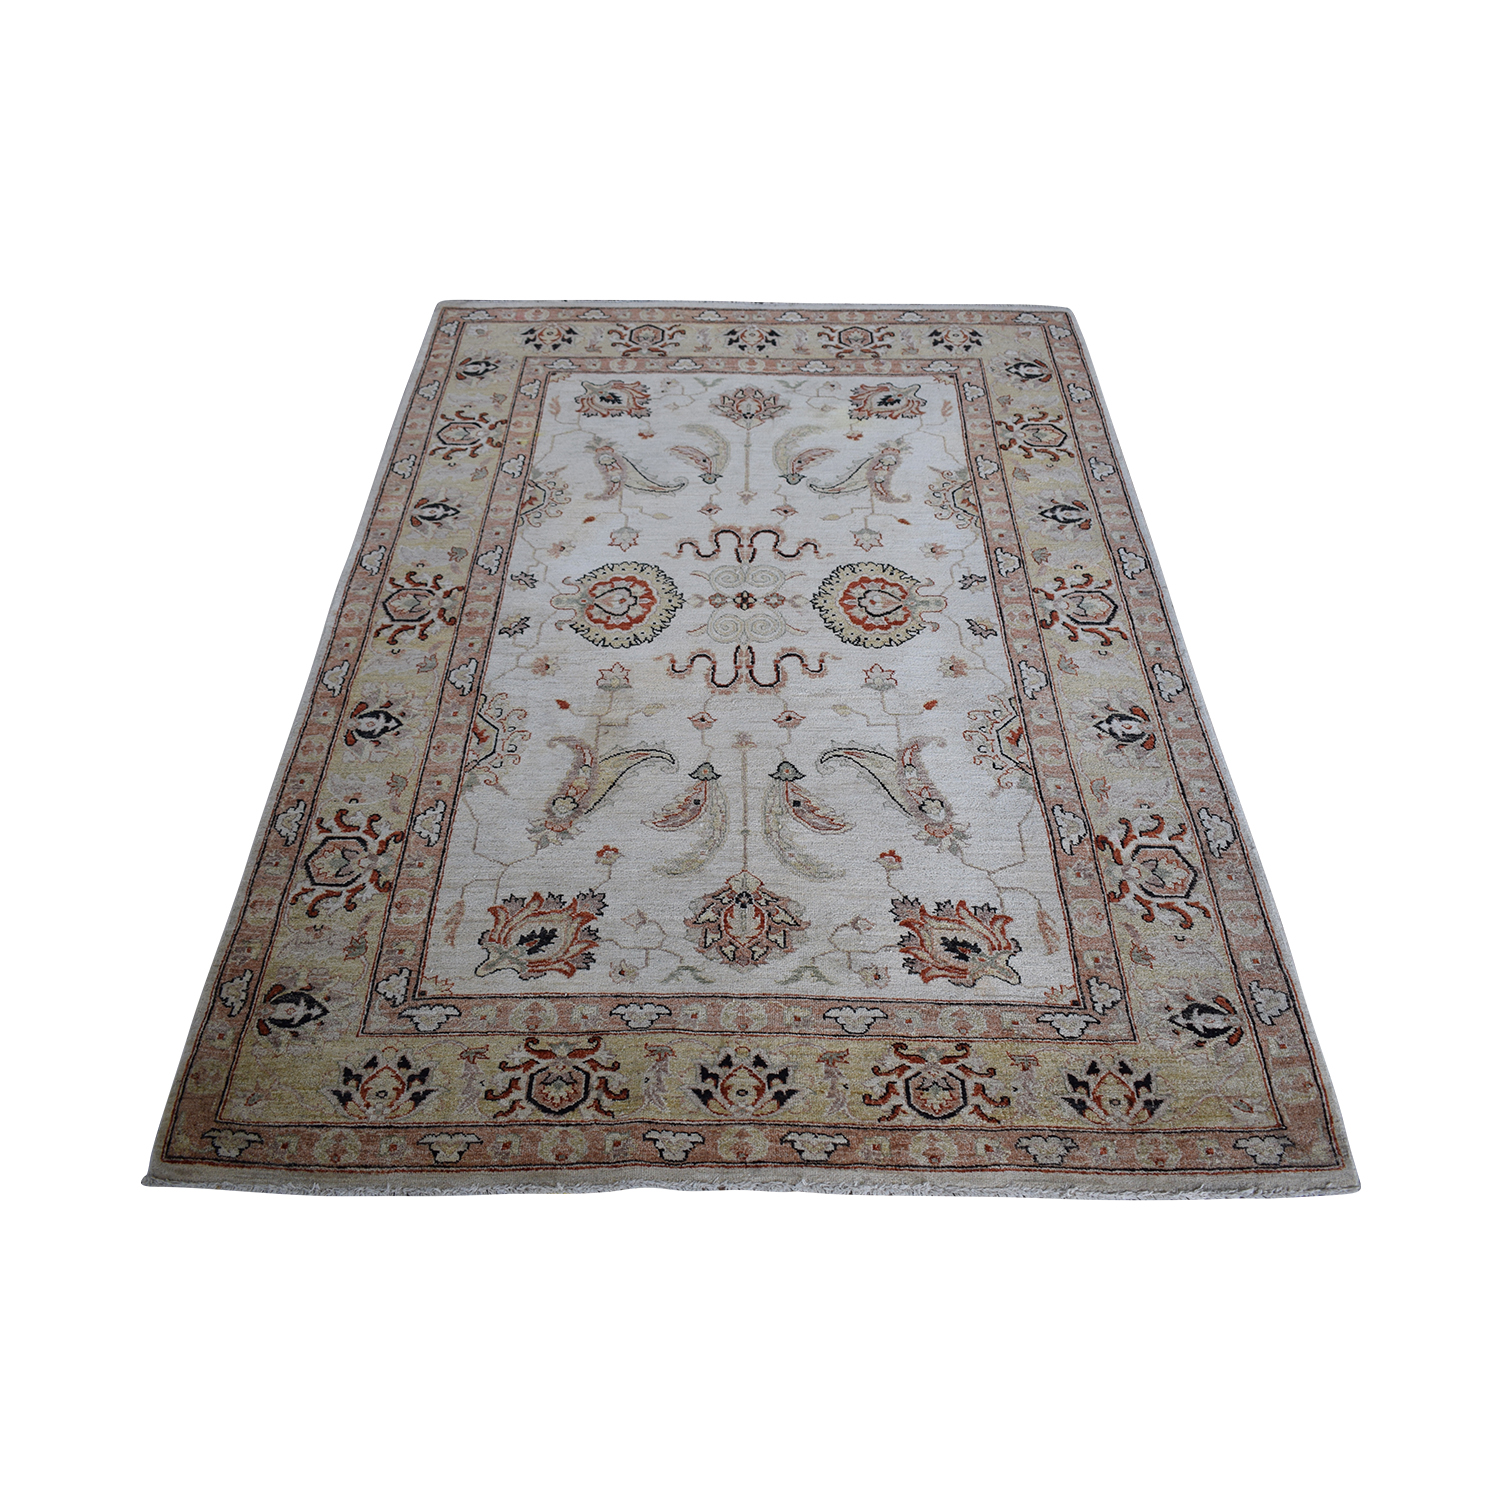 Wayfair Wayfair Patterned Area Rug nyc